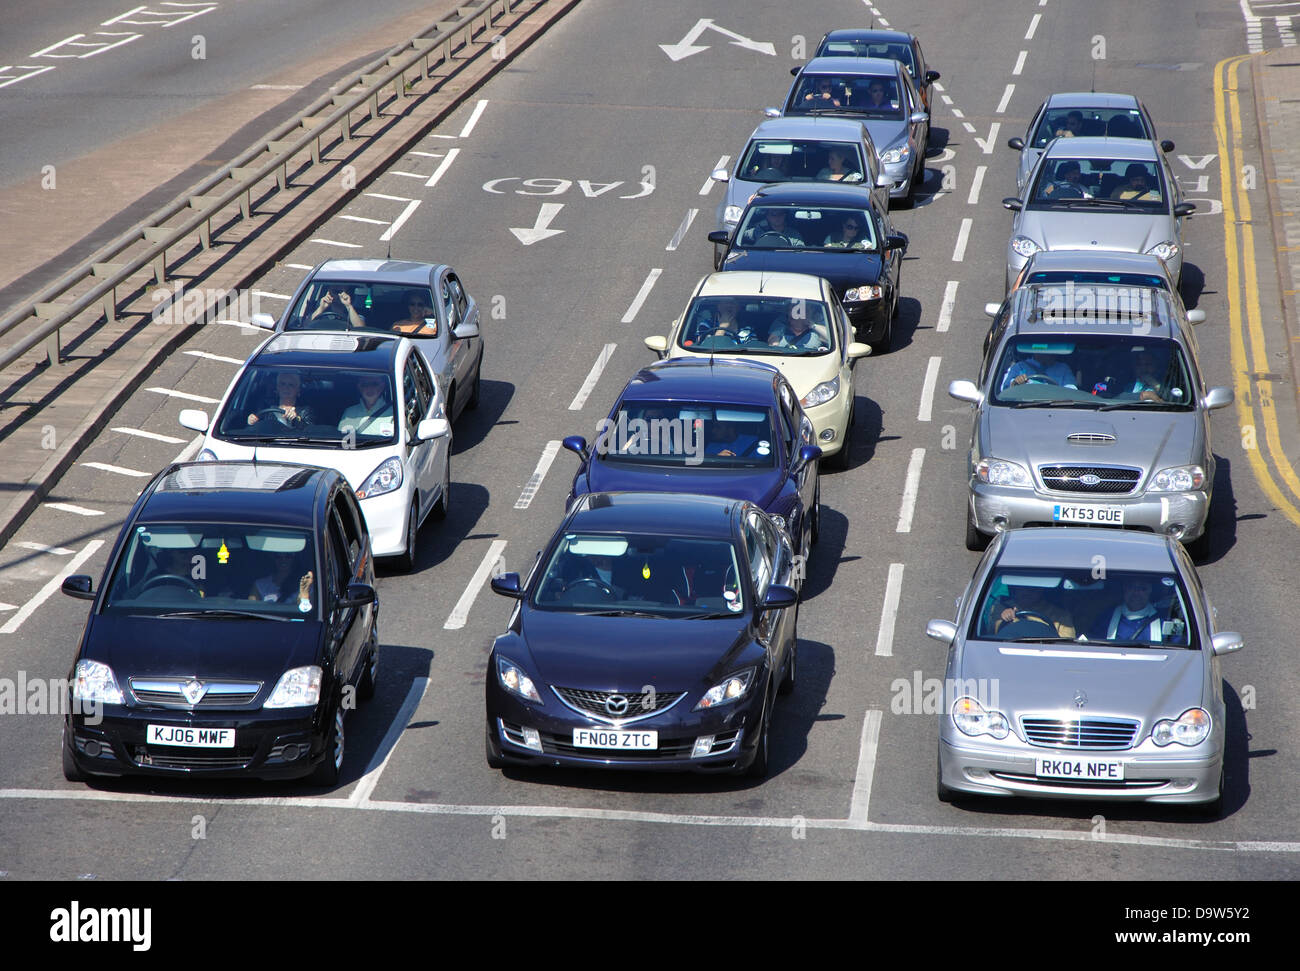 traffic queuing at road junction, Burleys Way, Leicester, England, UK - Stock Image